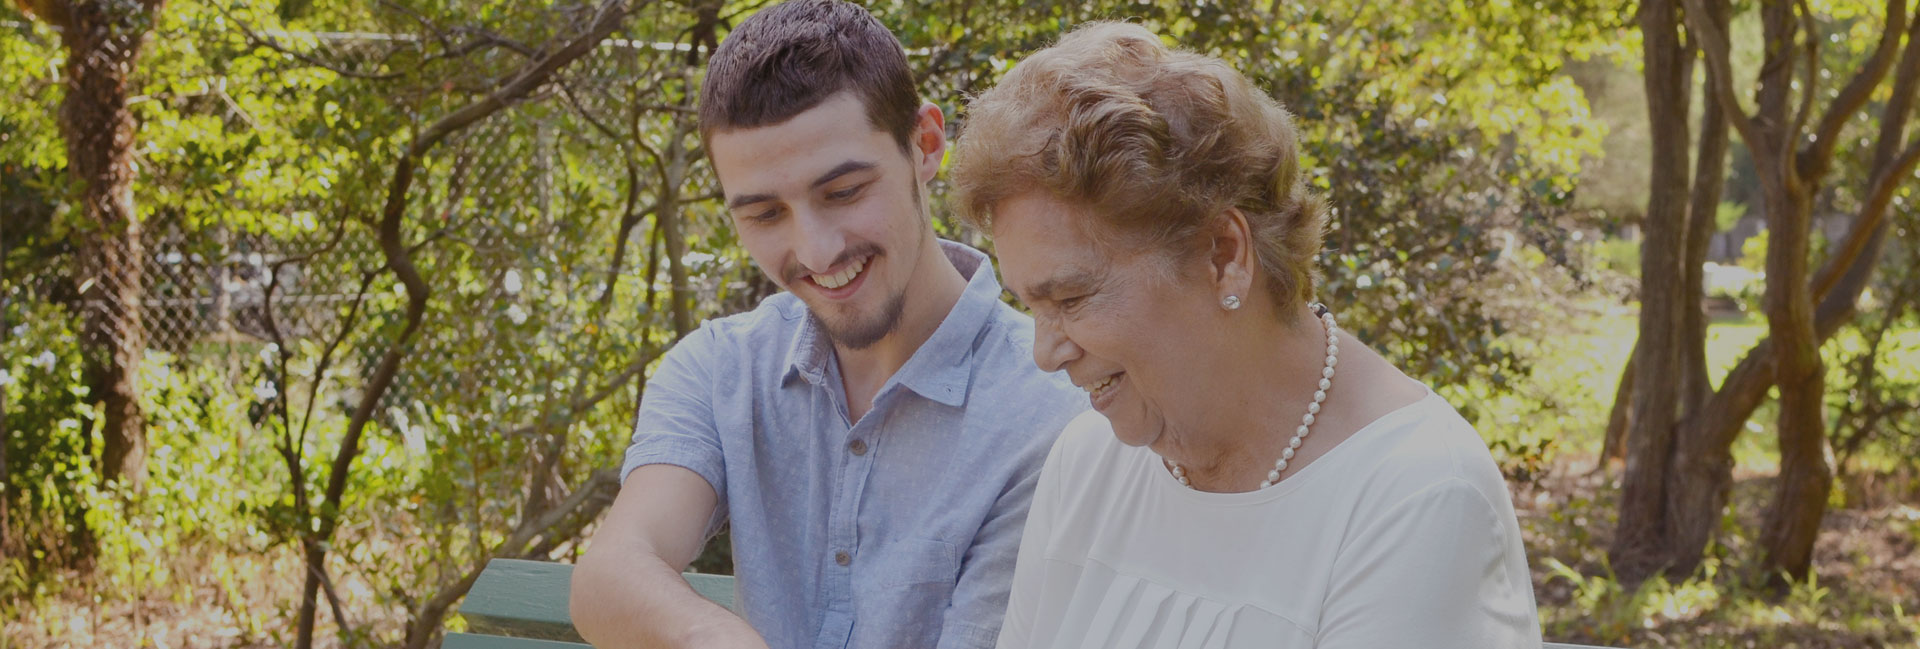 A photo of a young man and an old lady looking at IPad